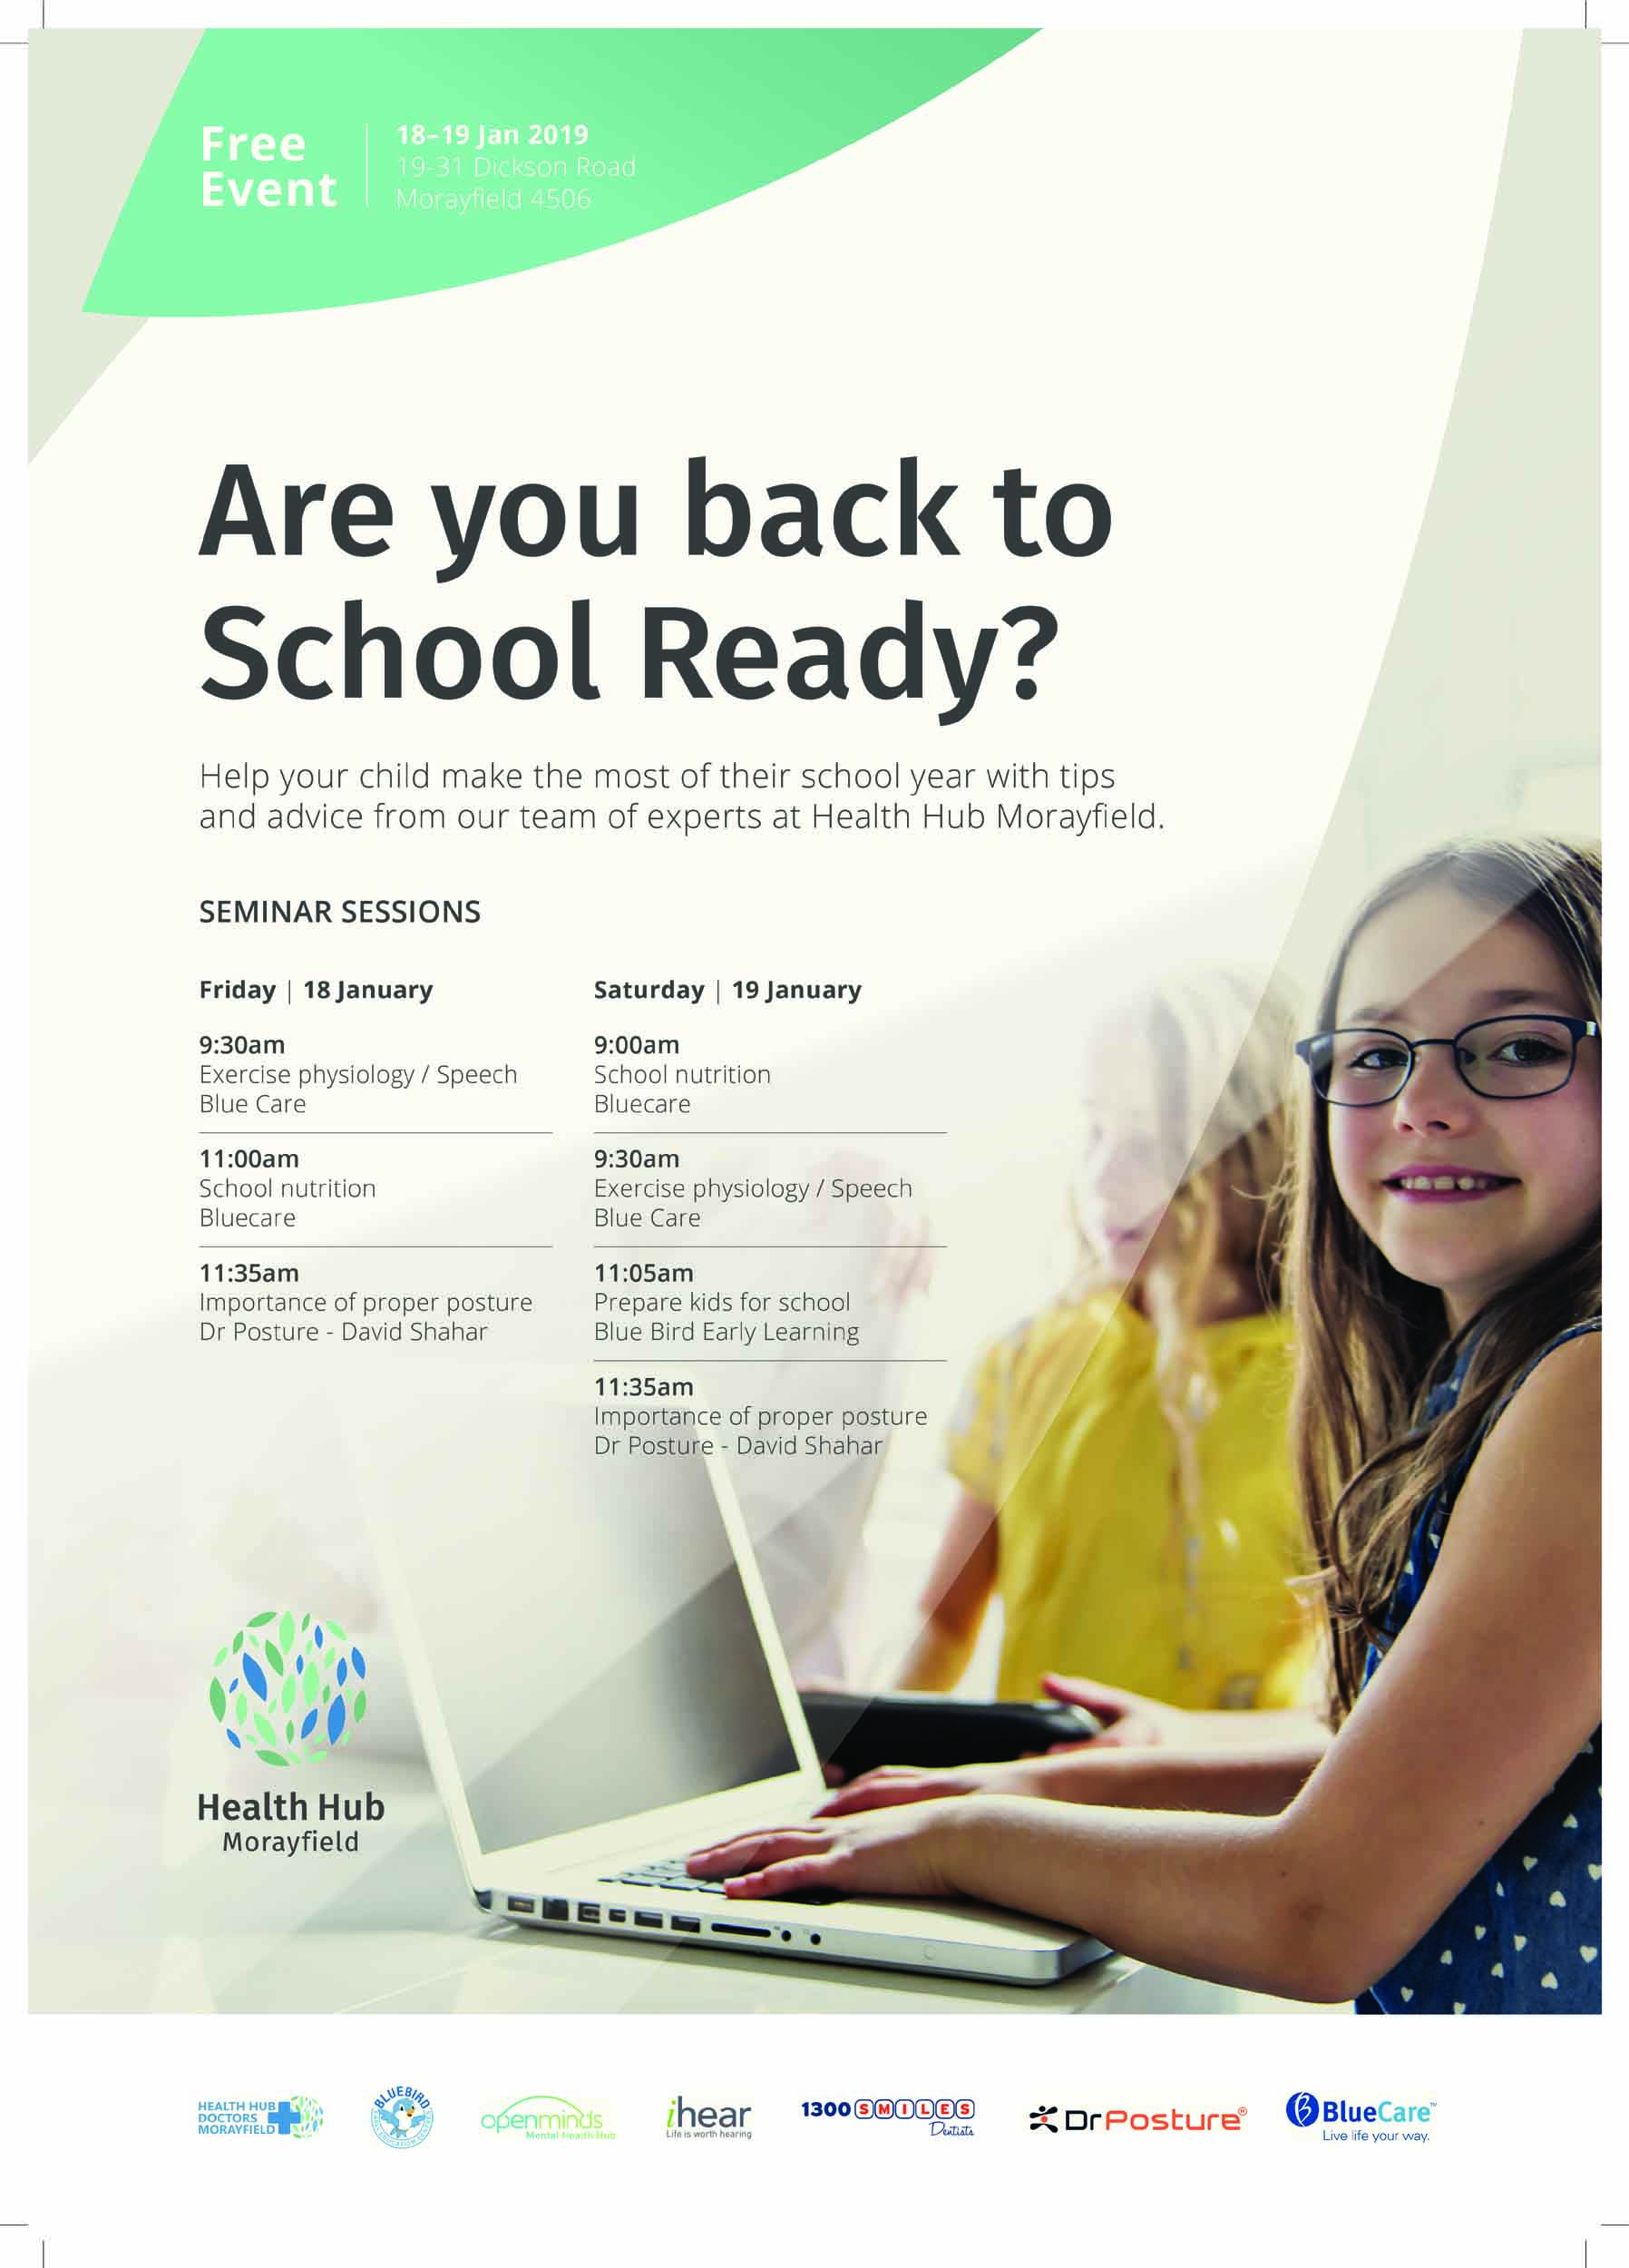 HHM_BacktoSchool_Poster_A3_Print[2]-page-0 small